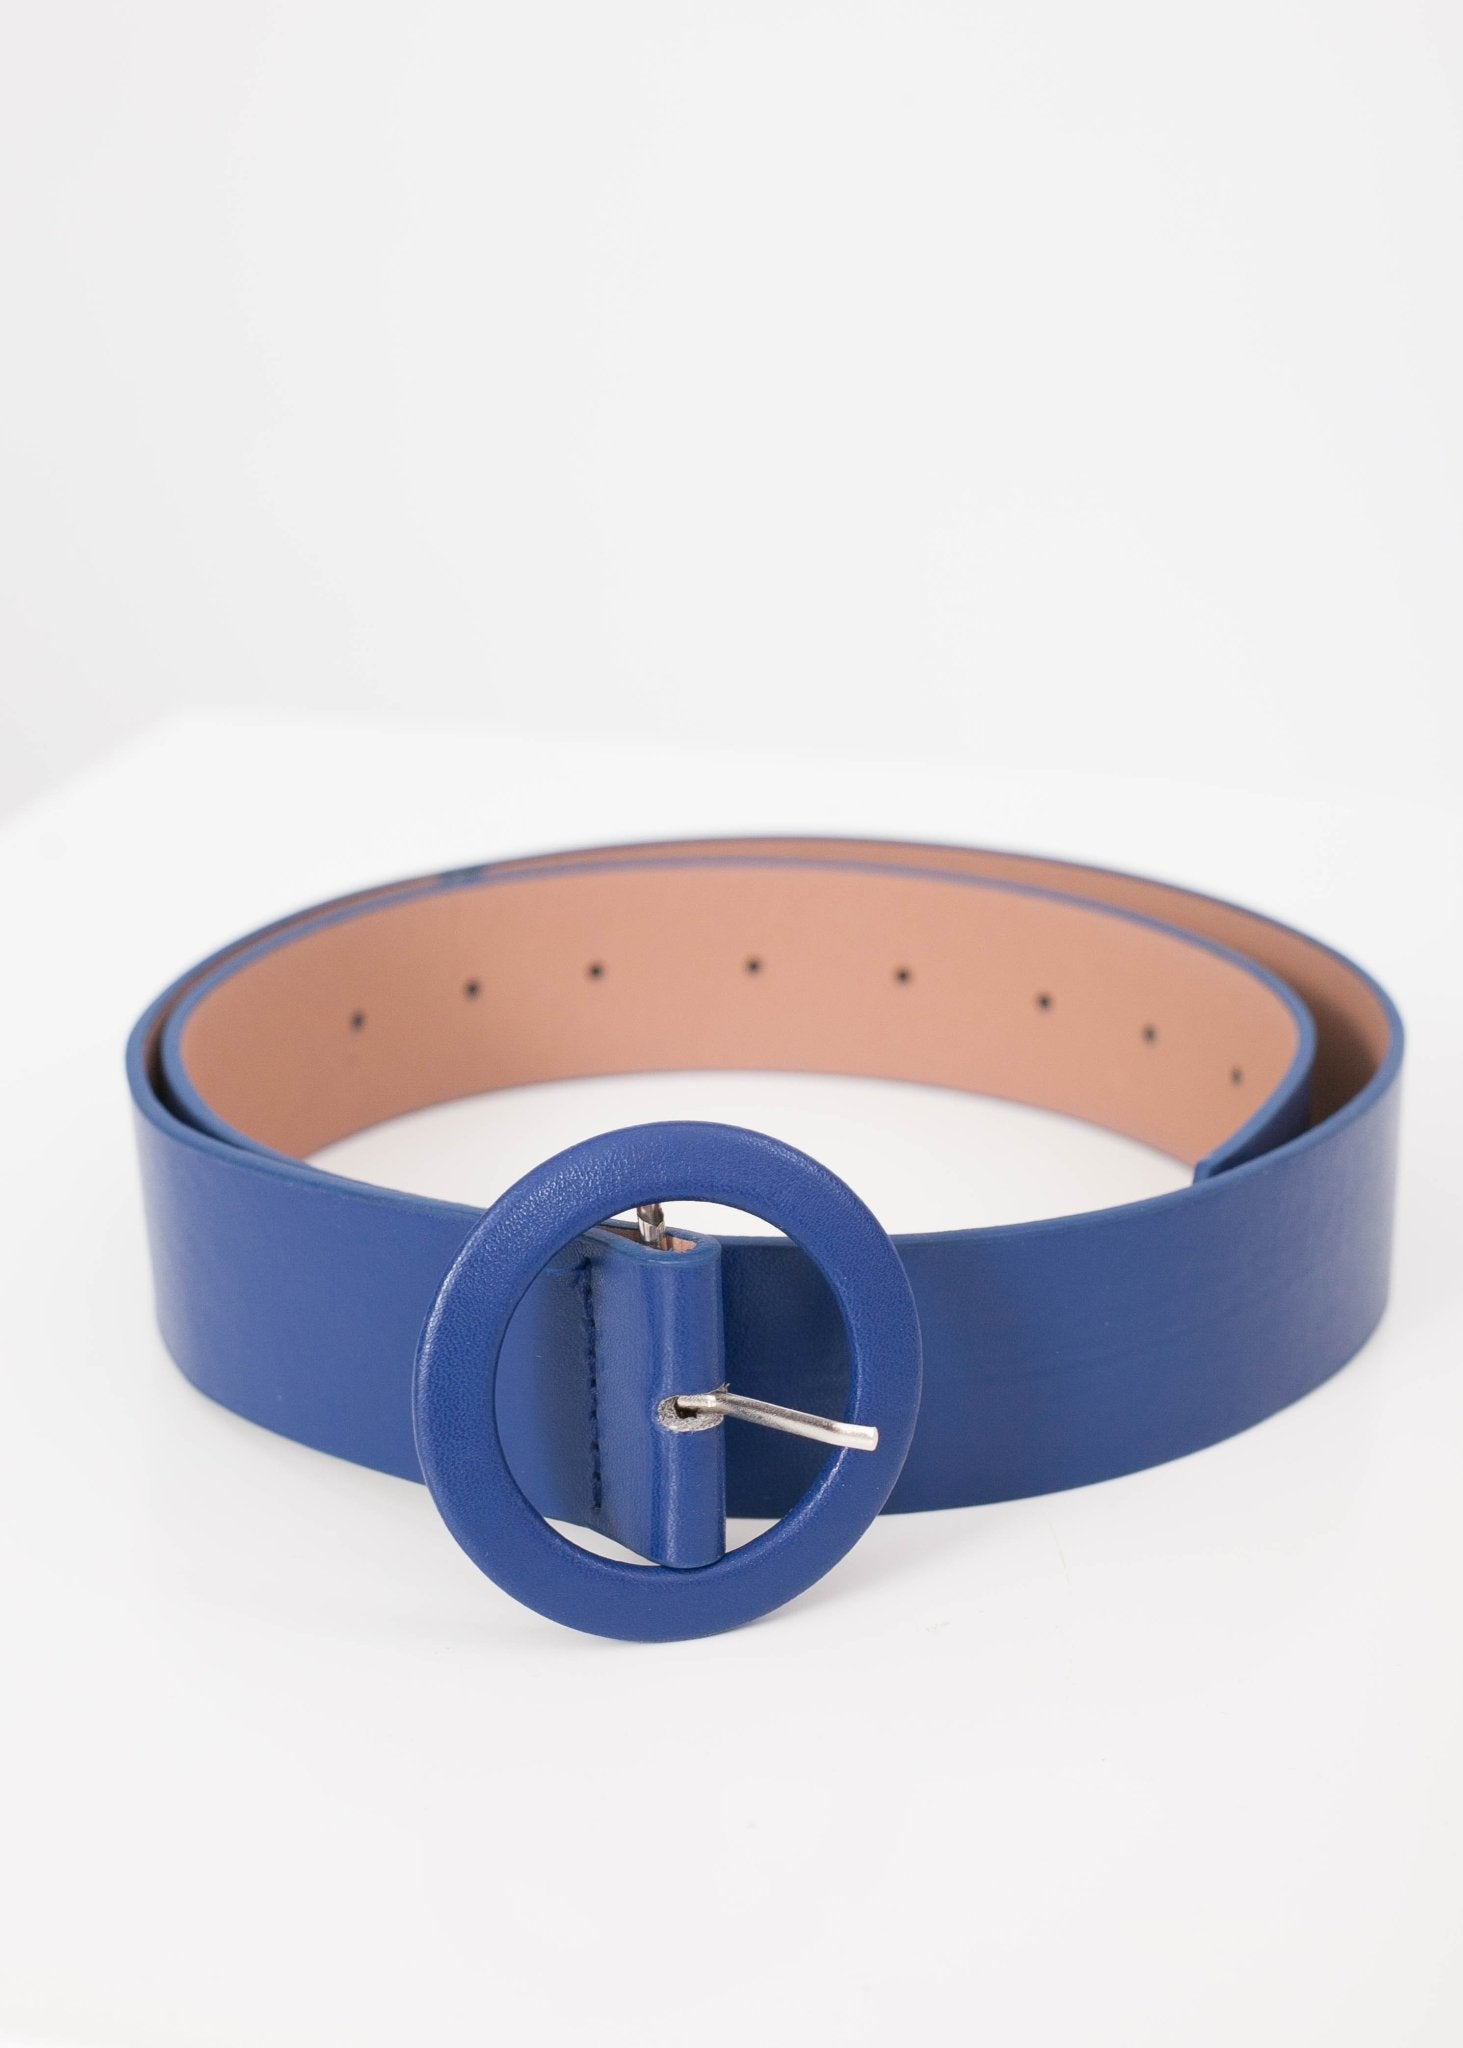 Frankie Blue Belt - The Walk in Wardrobe